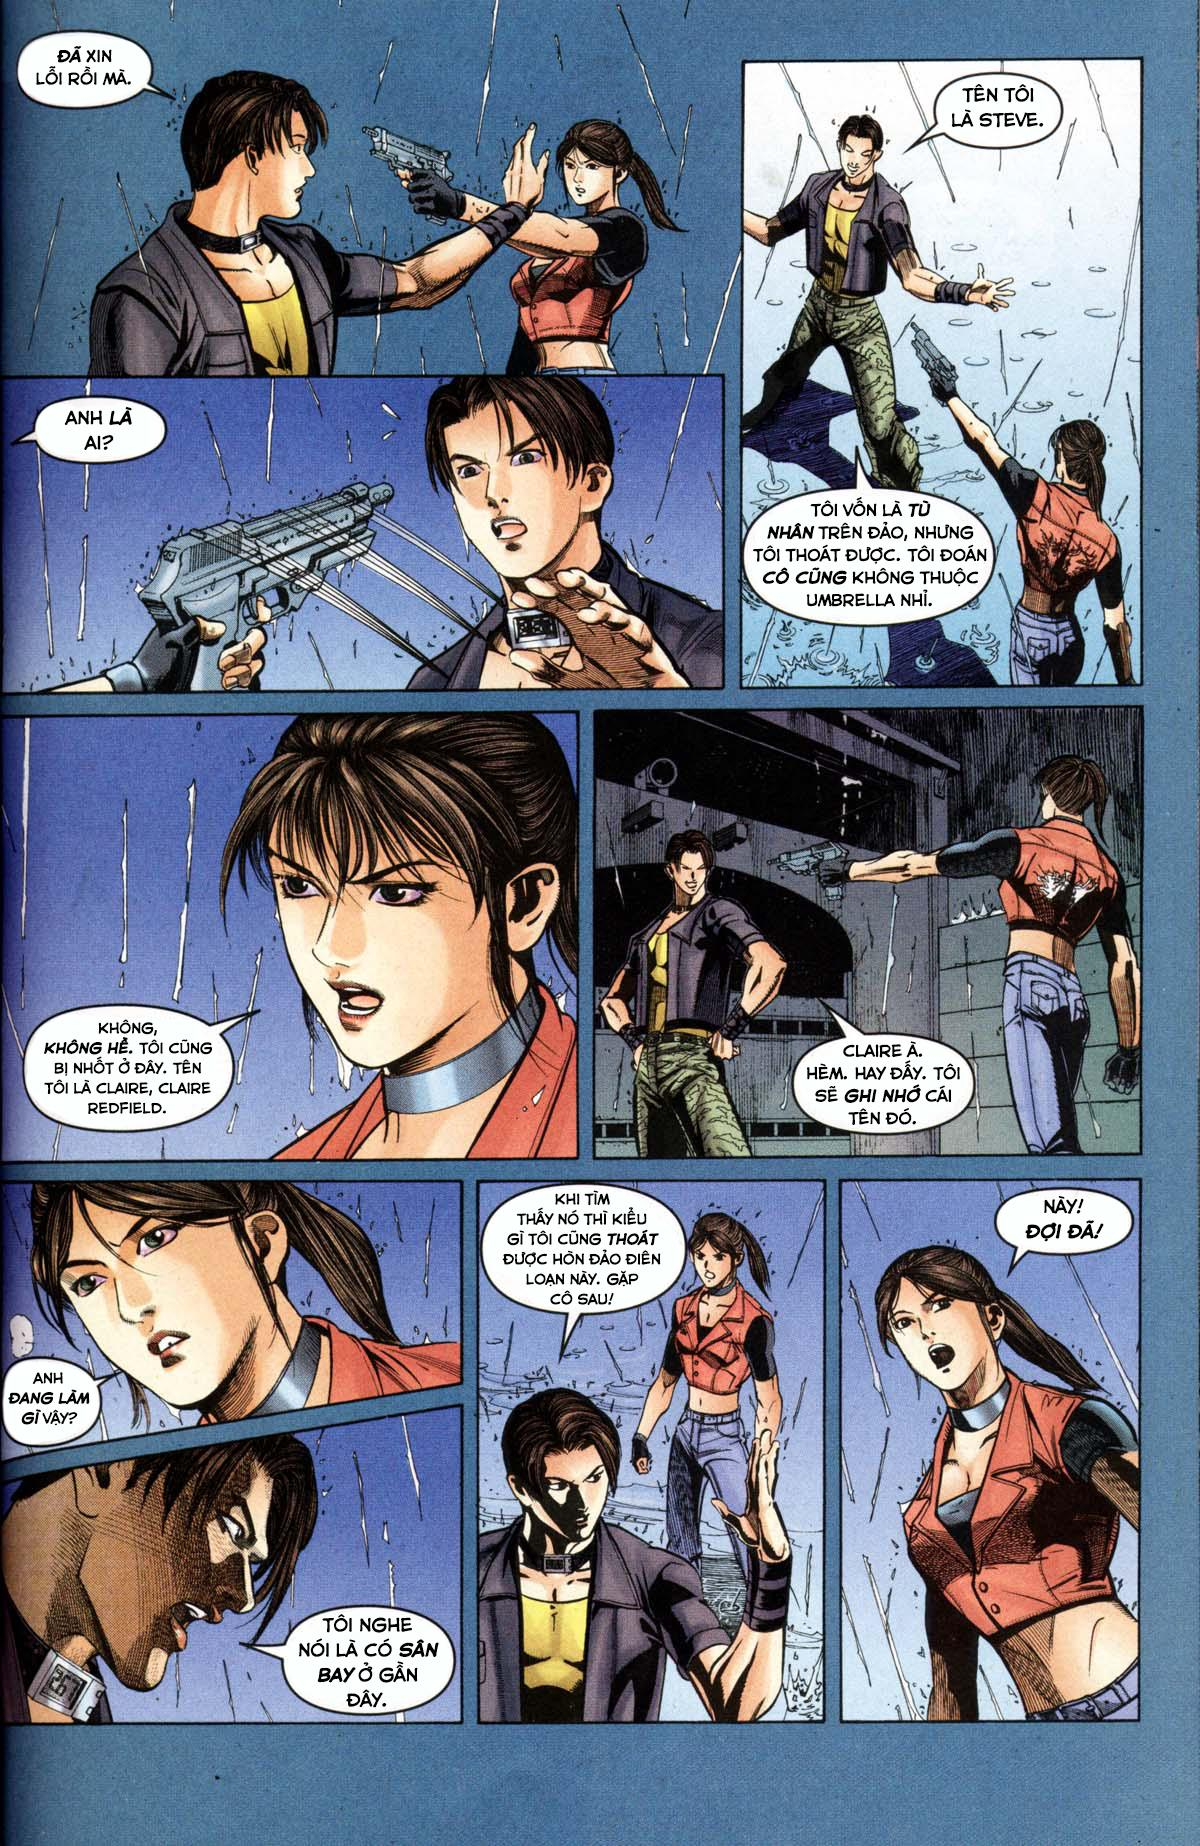 Resident Evil - Code: Veronica - Book One: Chapter 1